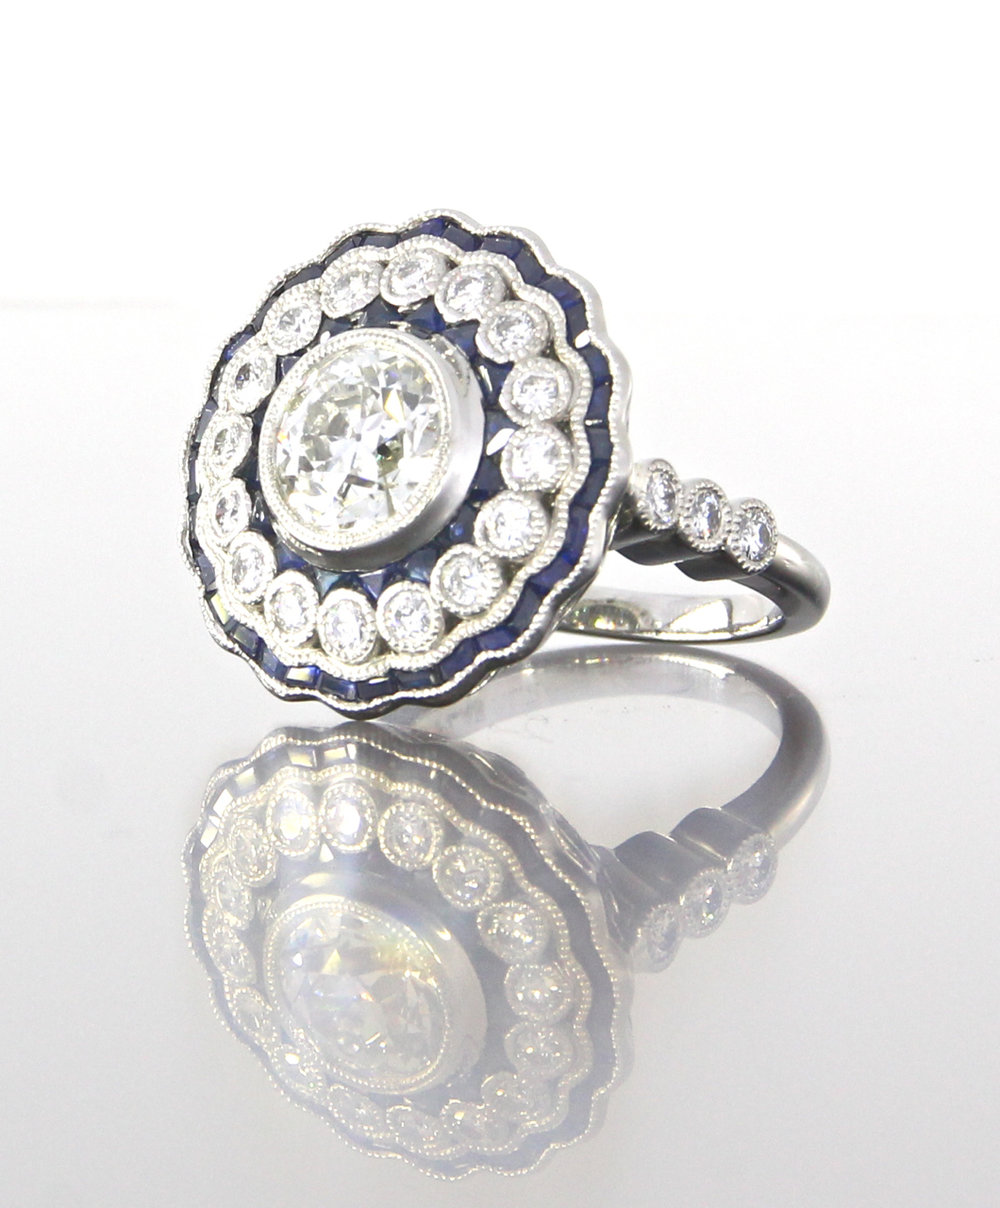 unique-ladies-round-diamond-sapphire-halo-art-deco-engagement-ring-craft-revival-jewelry-store-grand-rapids